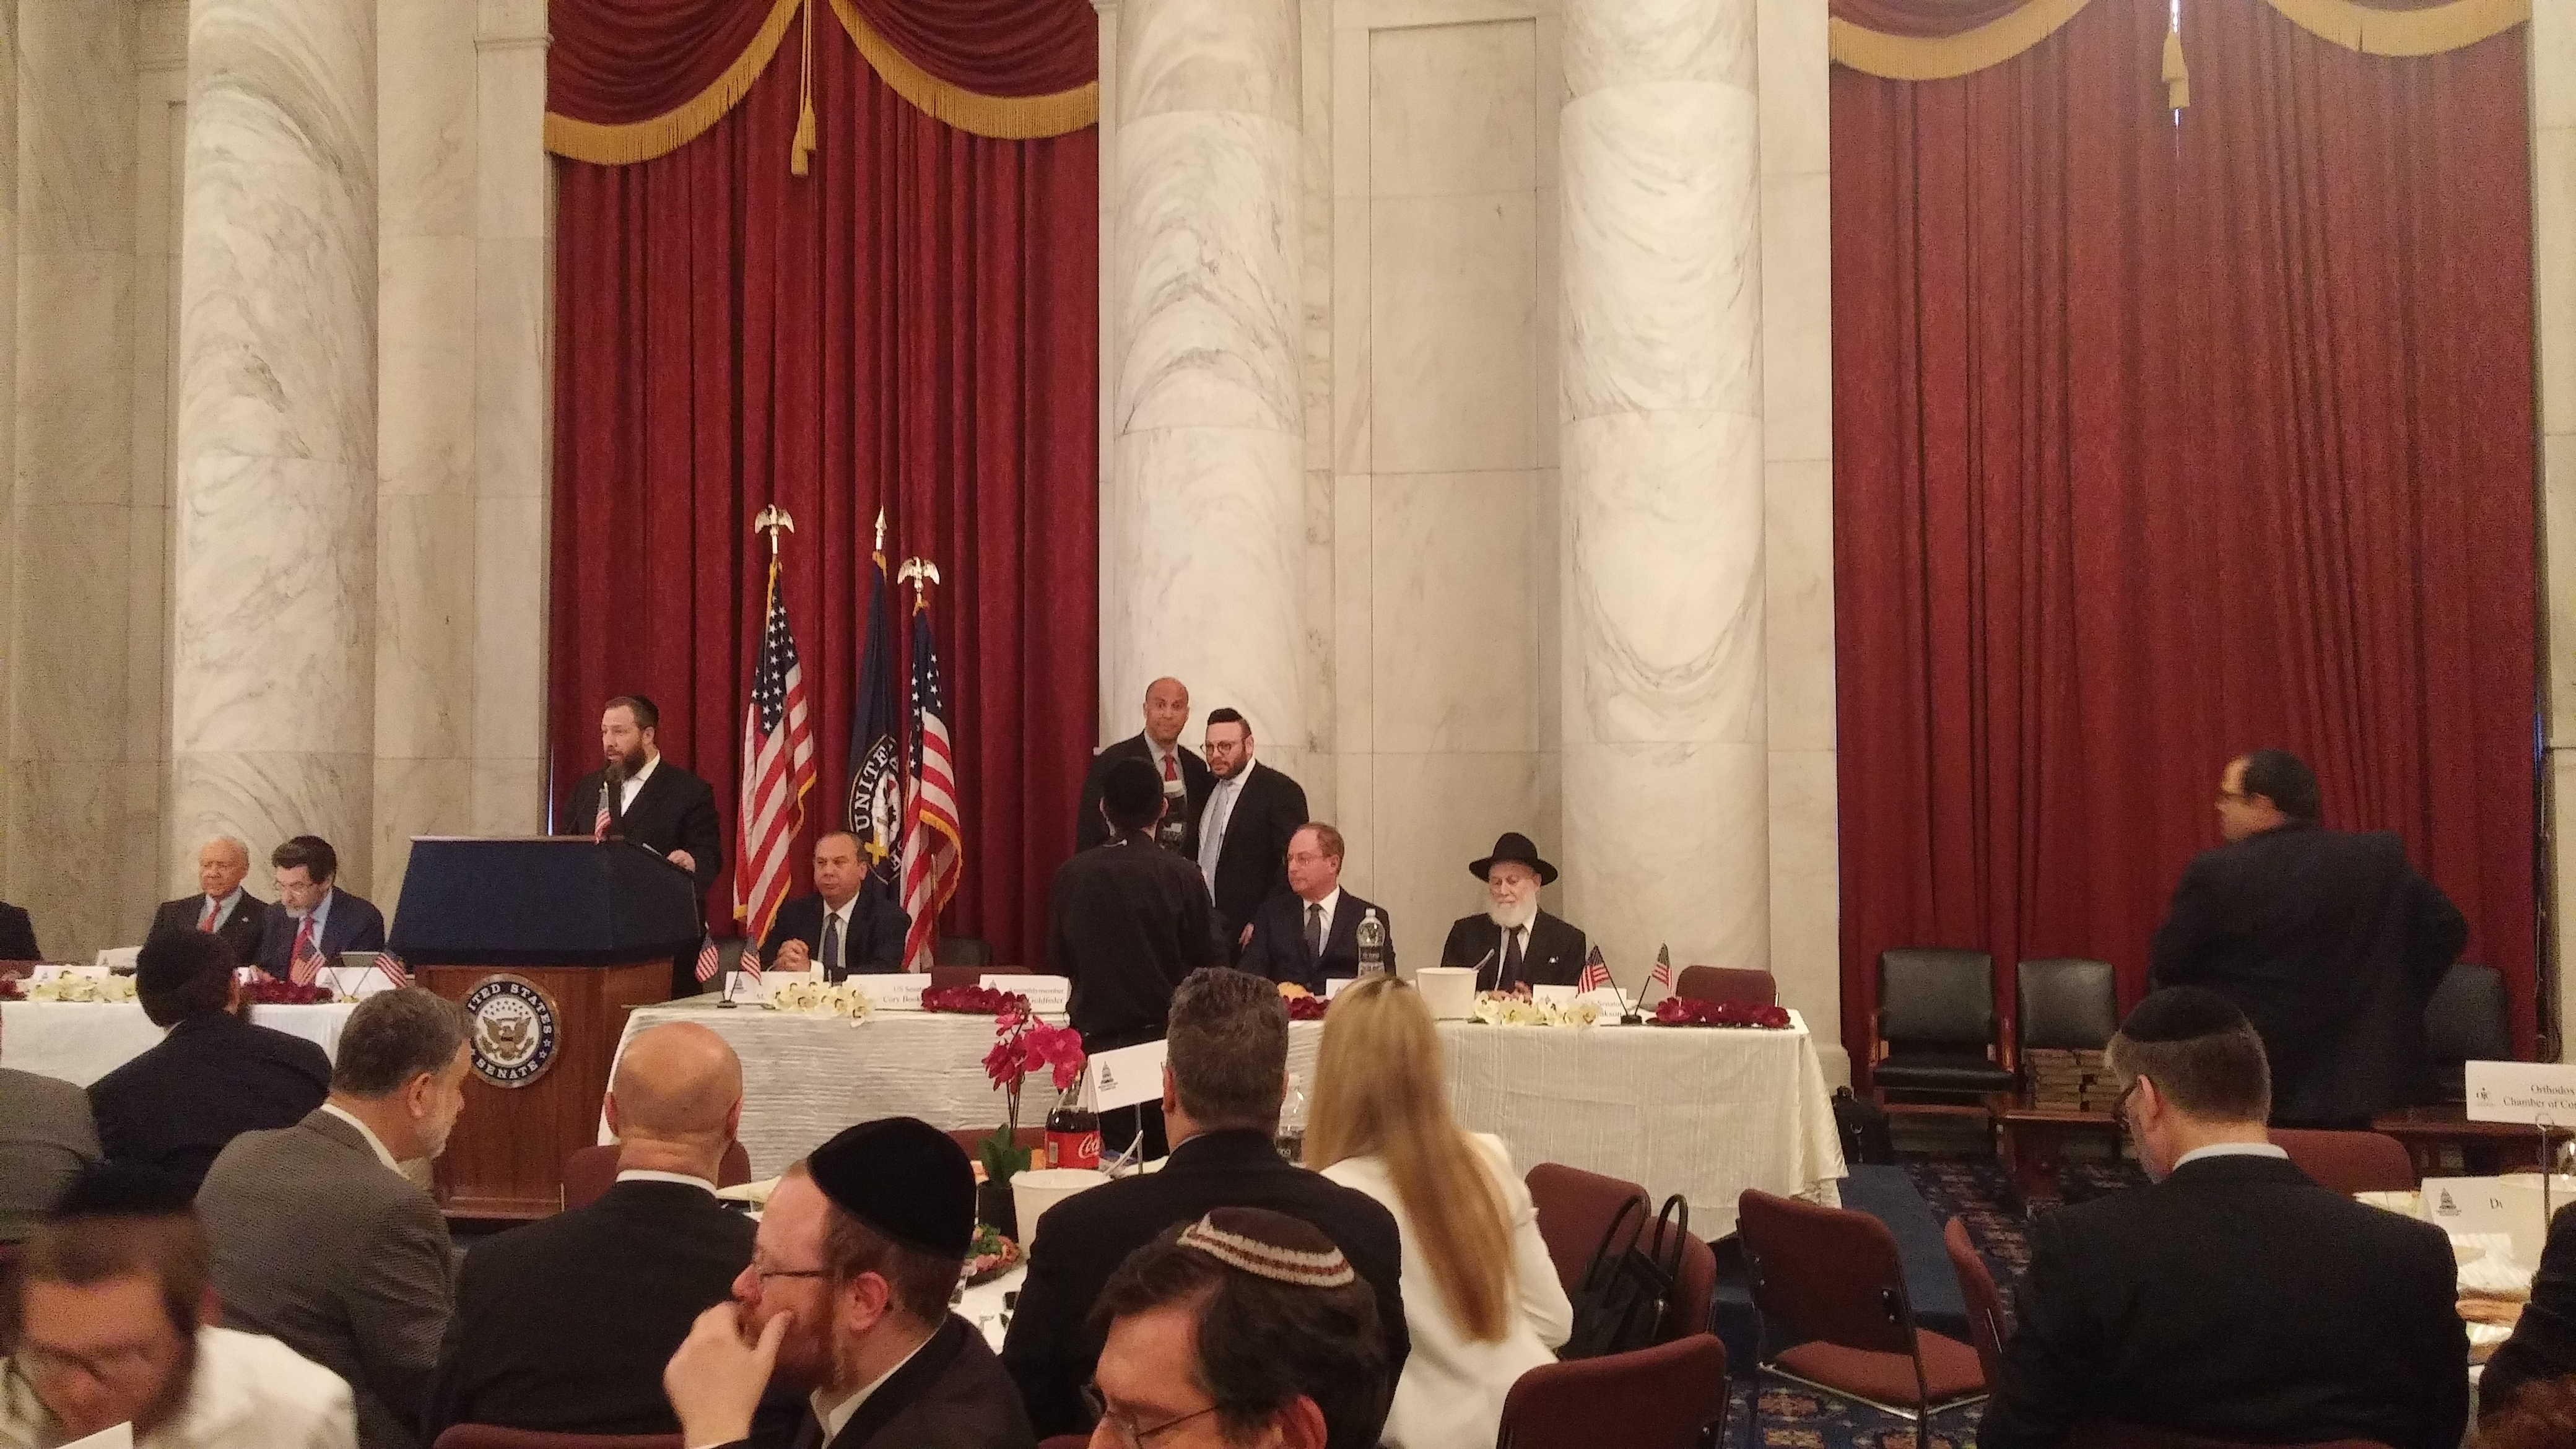 Orthodox Jewish Chamber of Commerce Acknowledged by Leading Senators and Other Dignitaries on Capitol Hill  (PHOTOS)